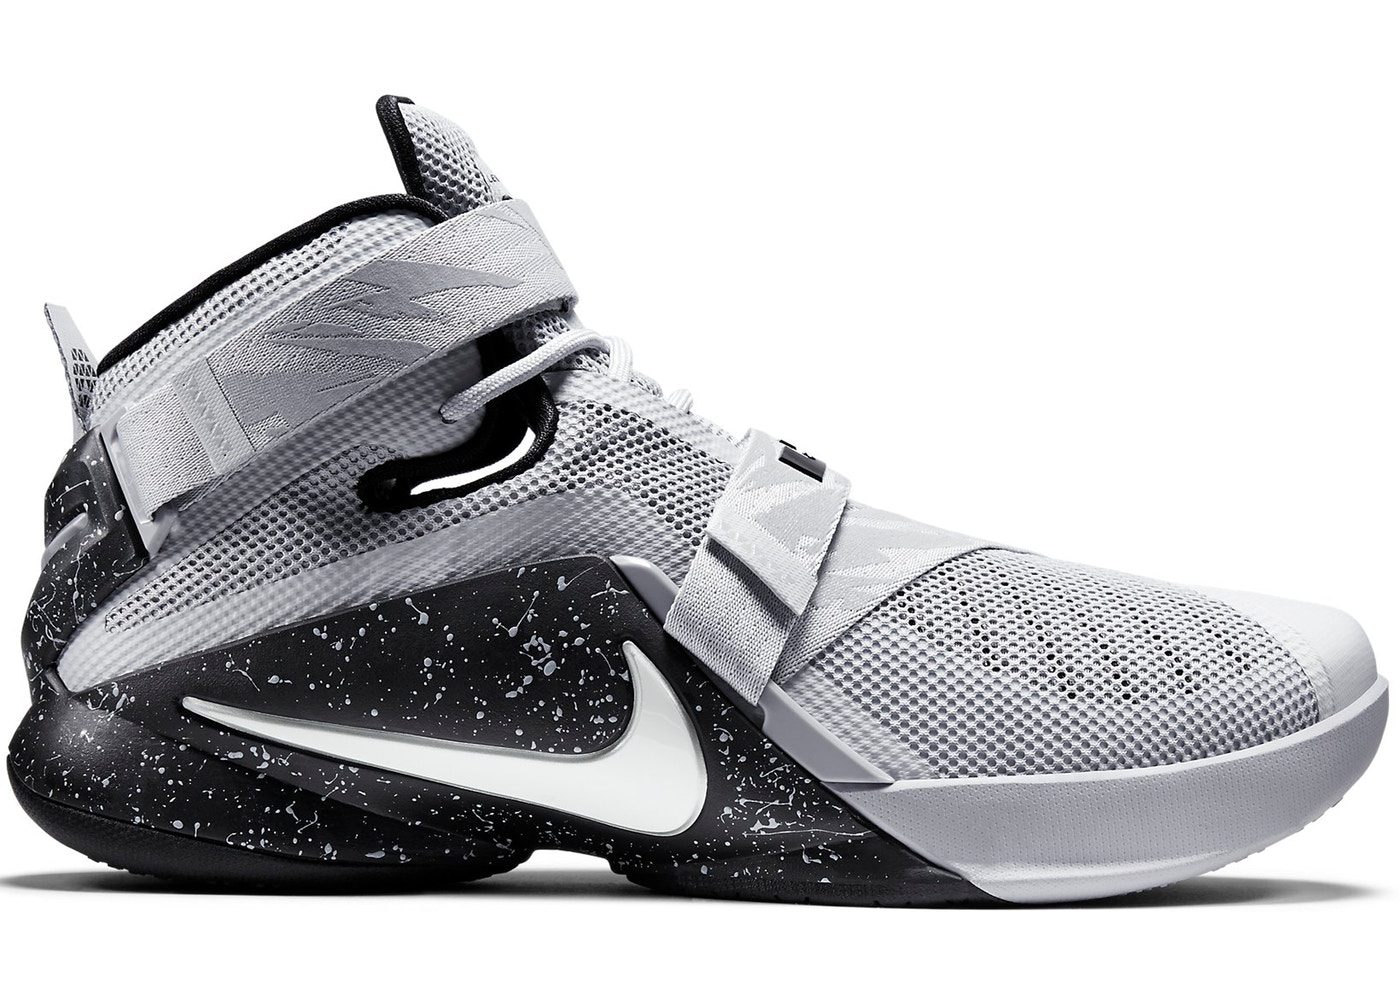 f2f15c1fce0a Buy Nike LeBron Other Shoes   Deadstock Sneakers